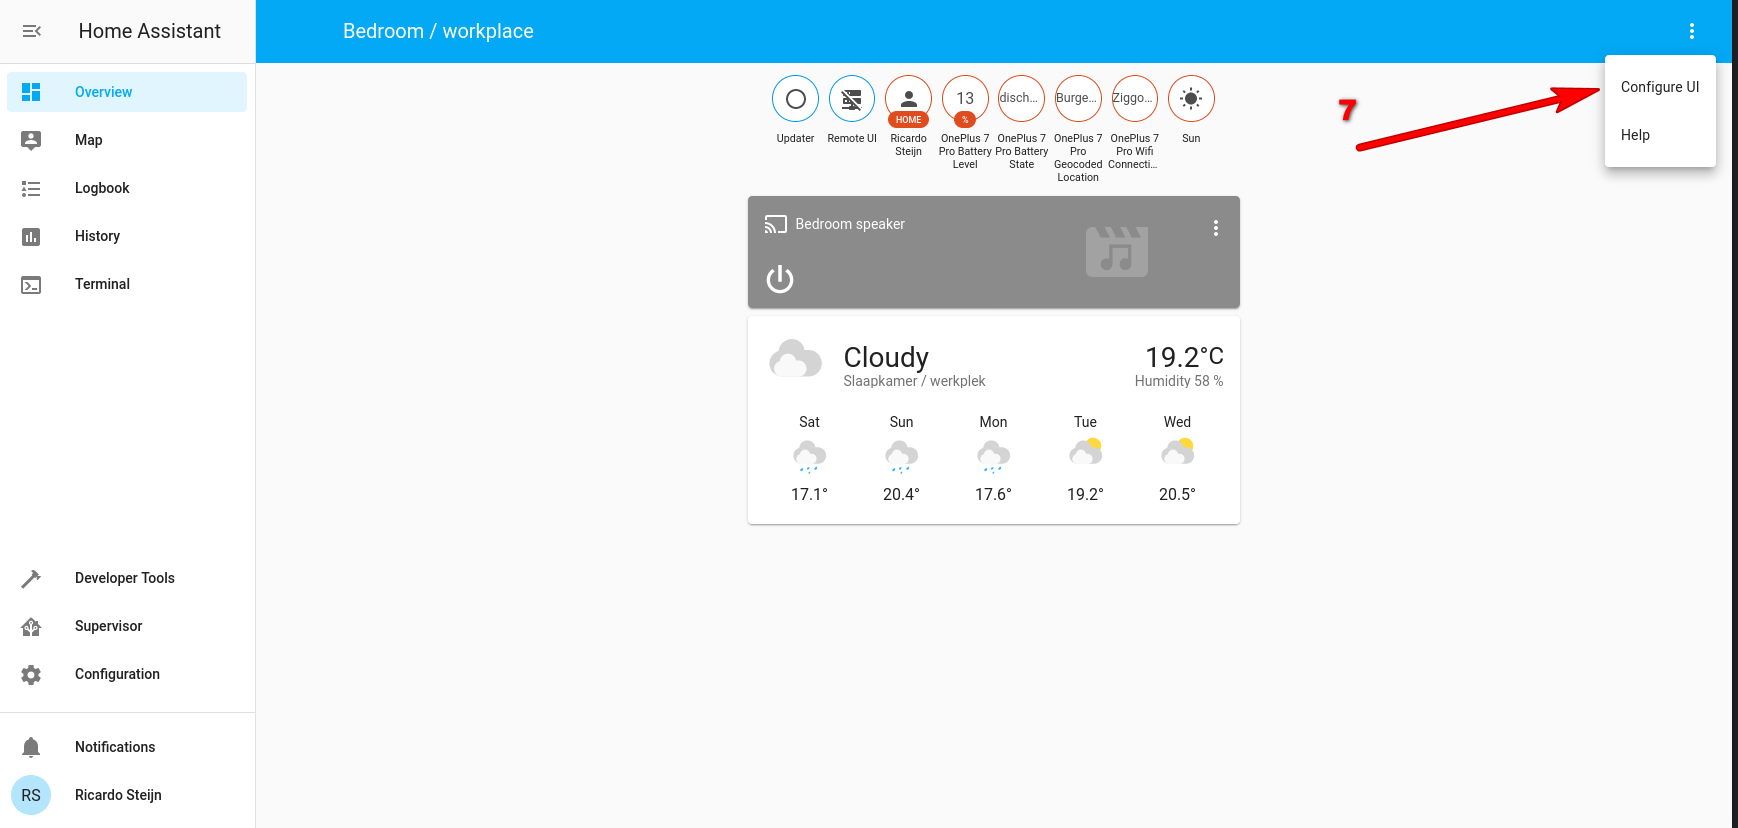 Home Assistant Configure UI